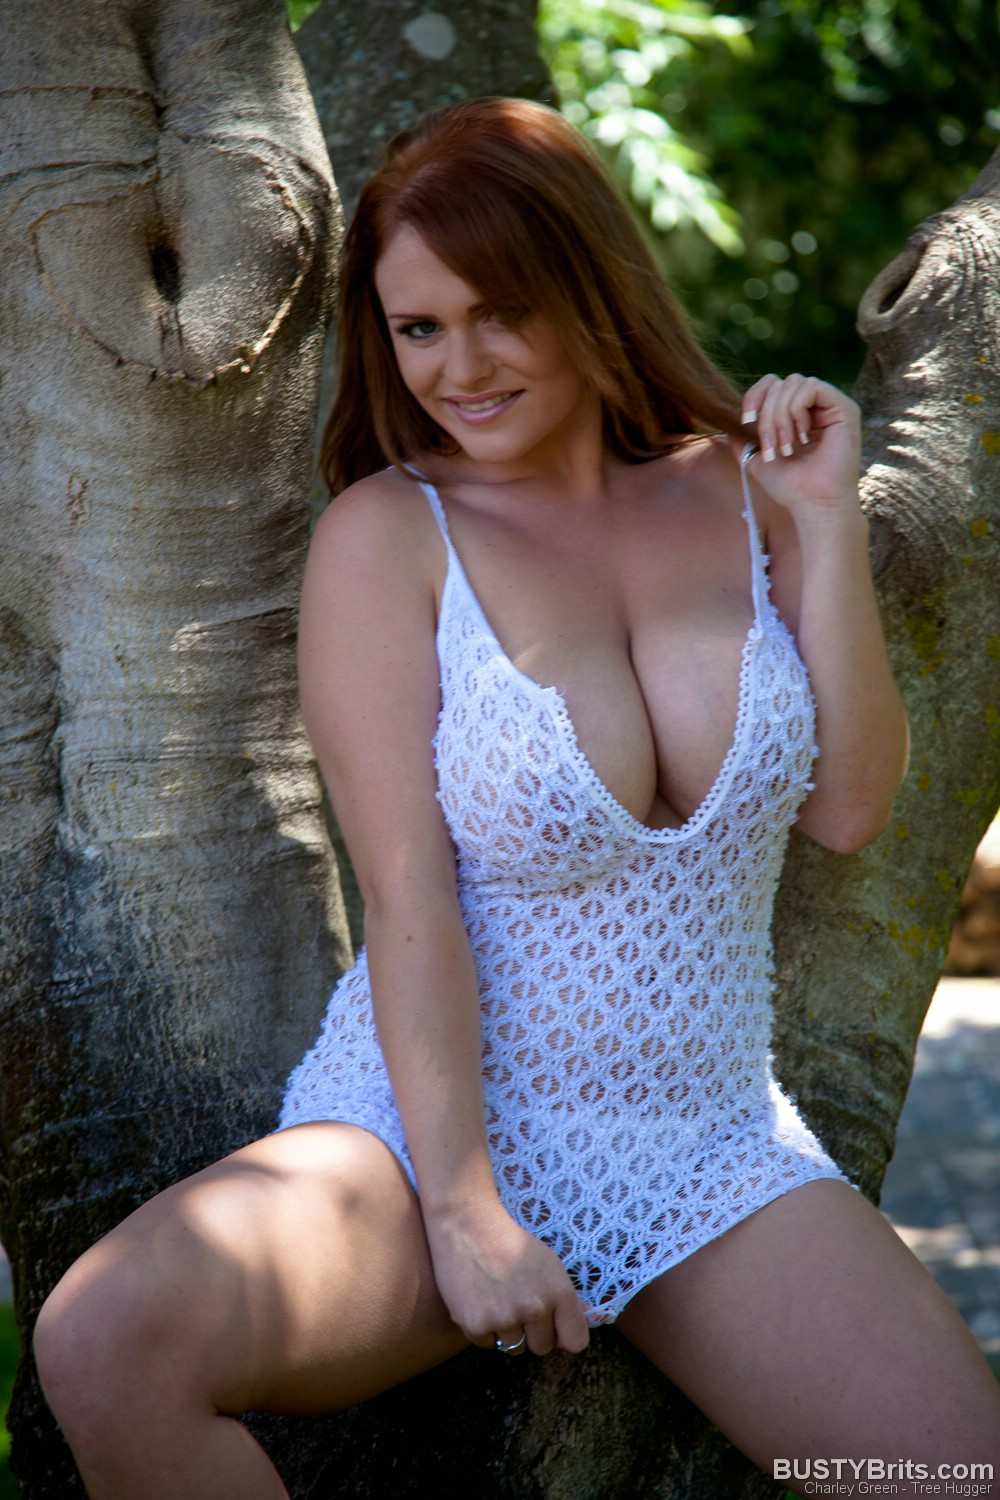 charley green busty nude Charley Green Park Nudes ...